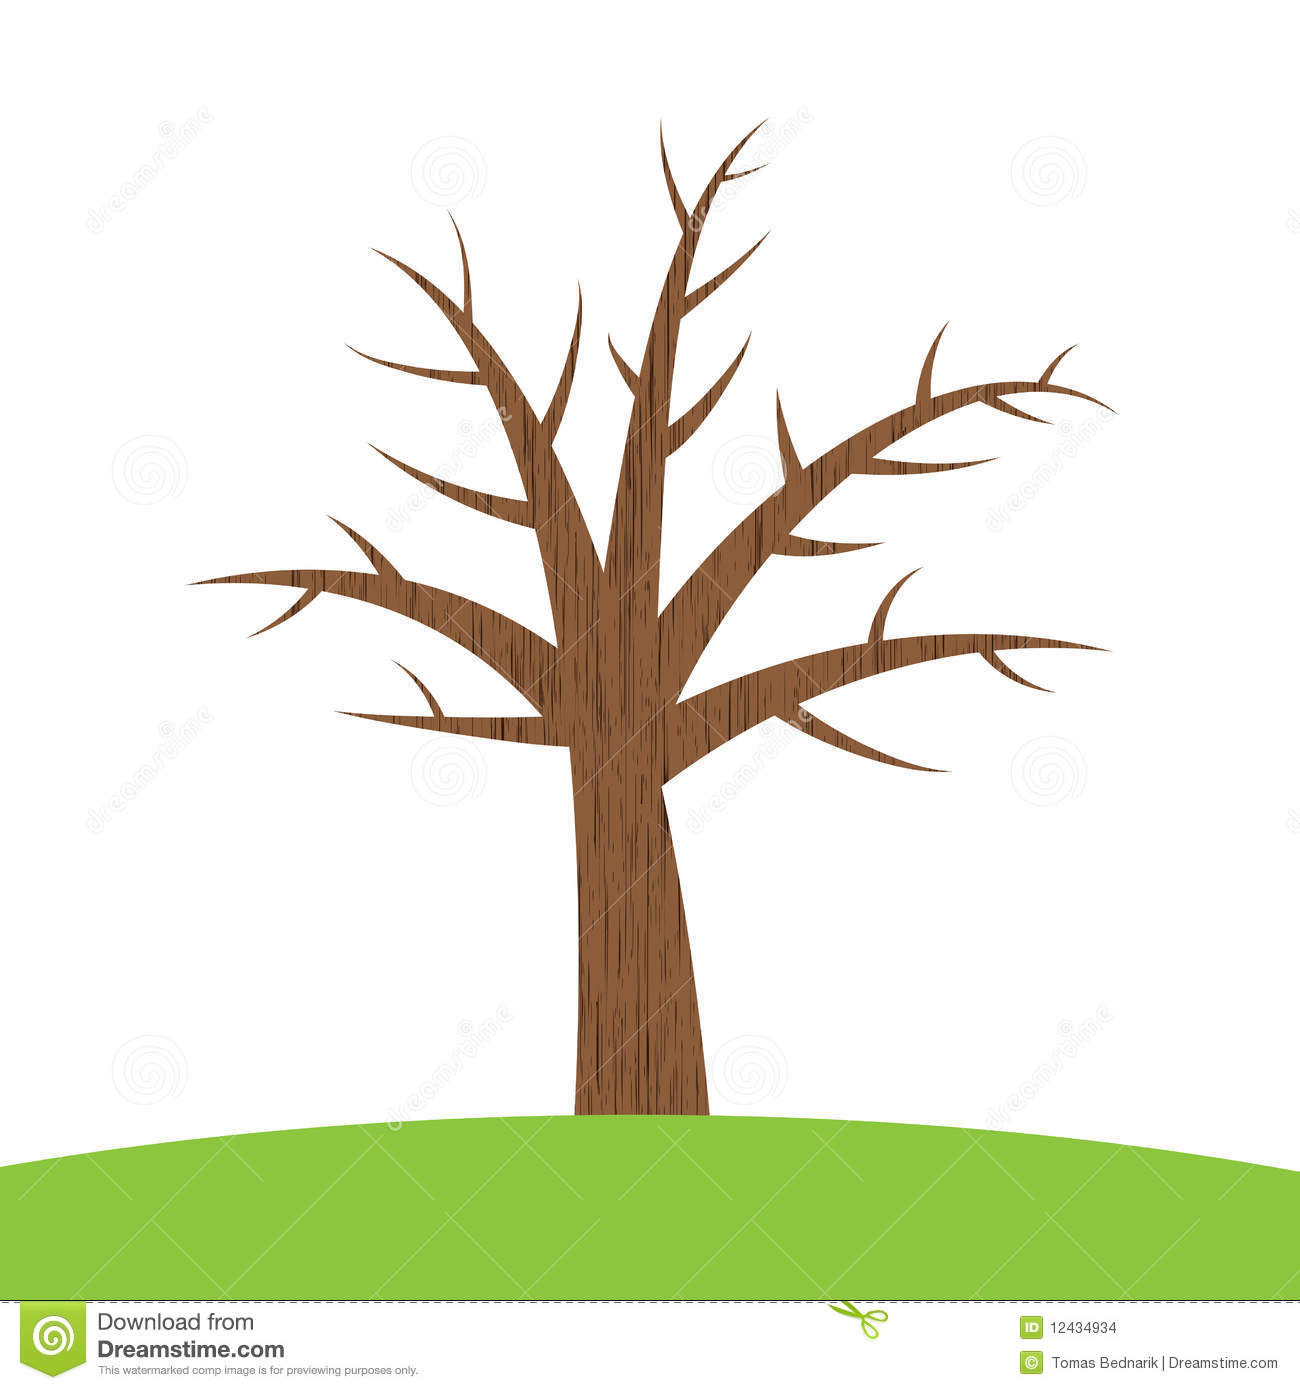 tree with trunk clipart branches - Clipground